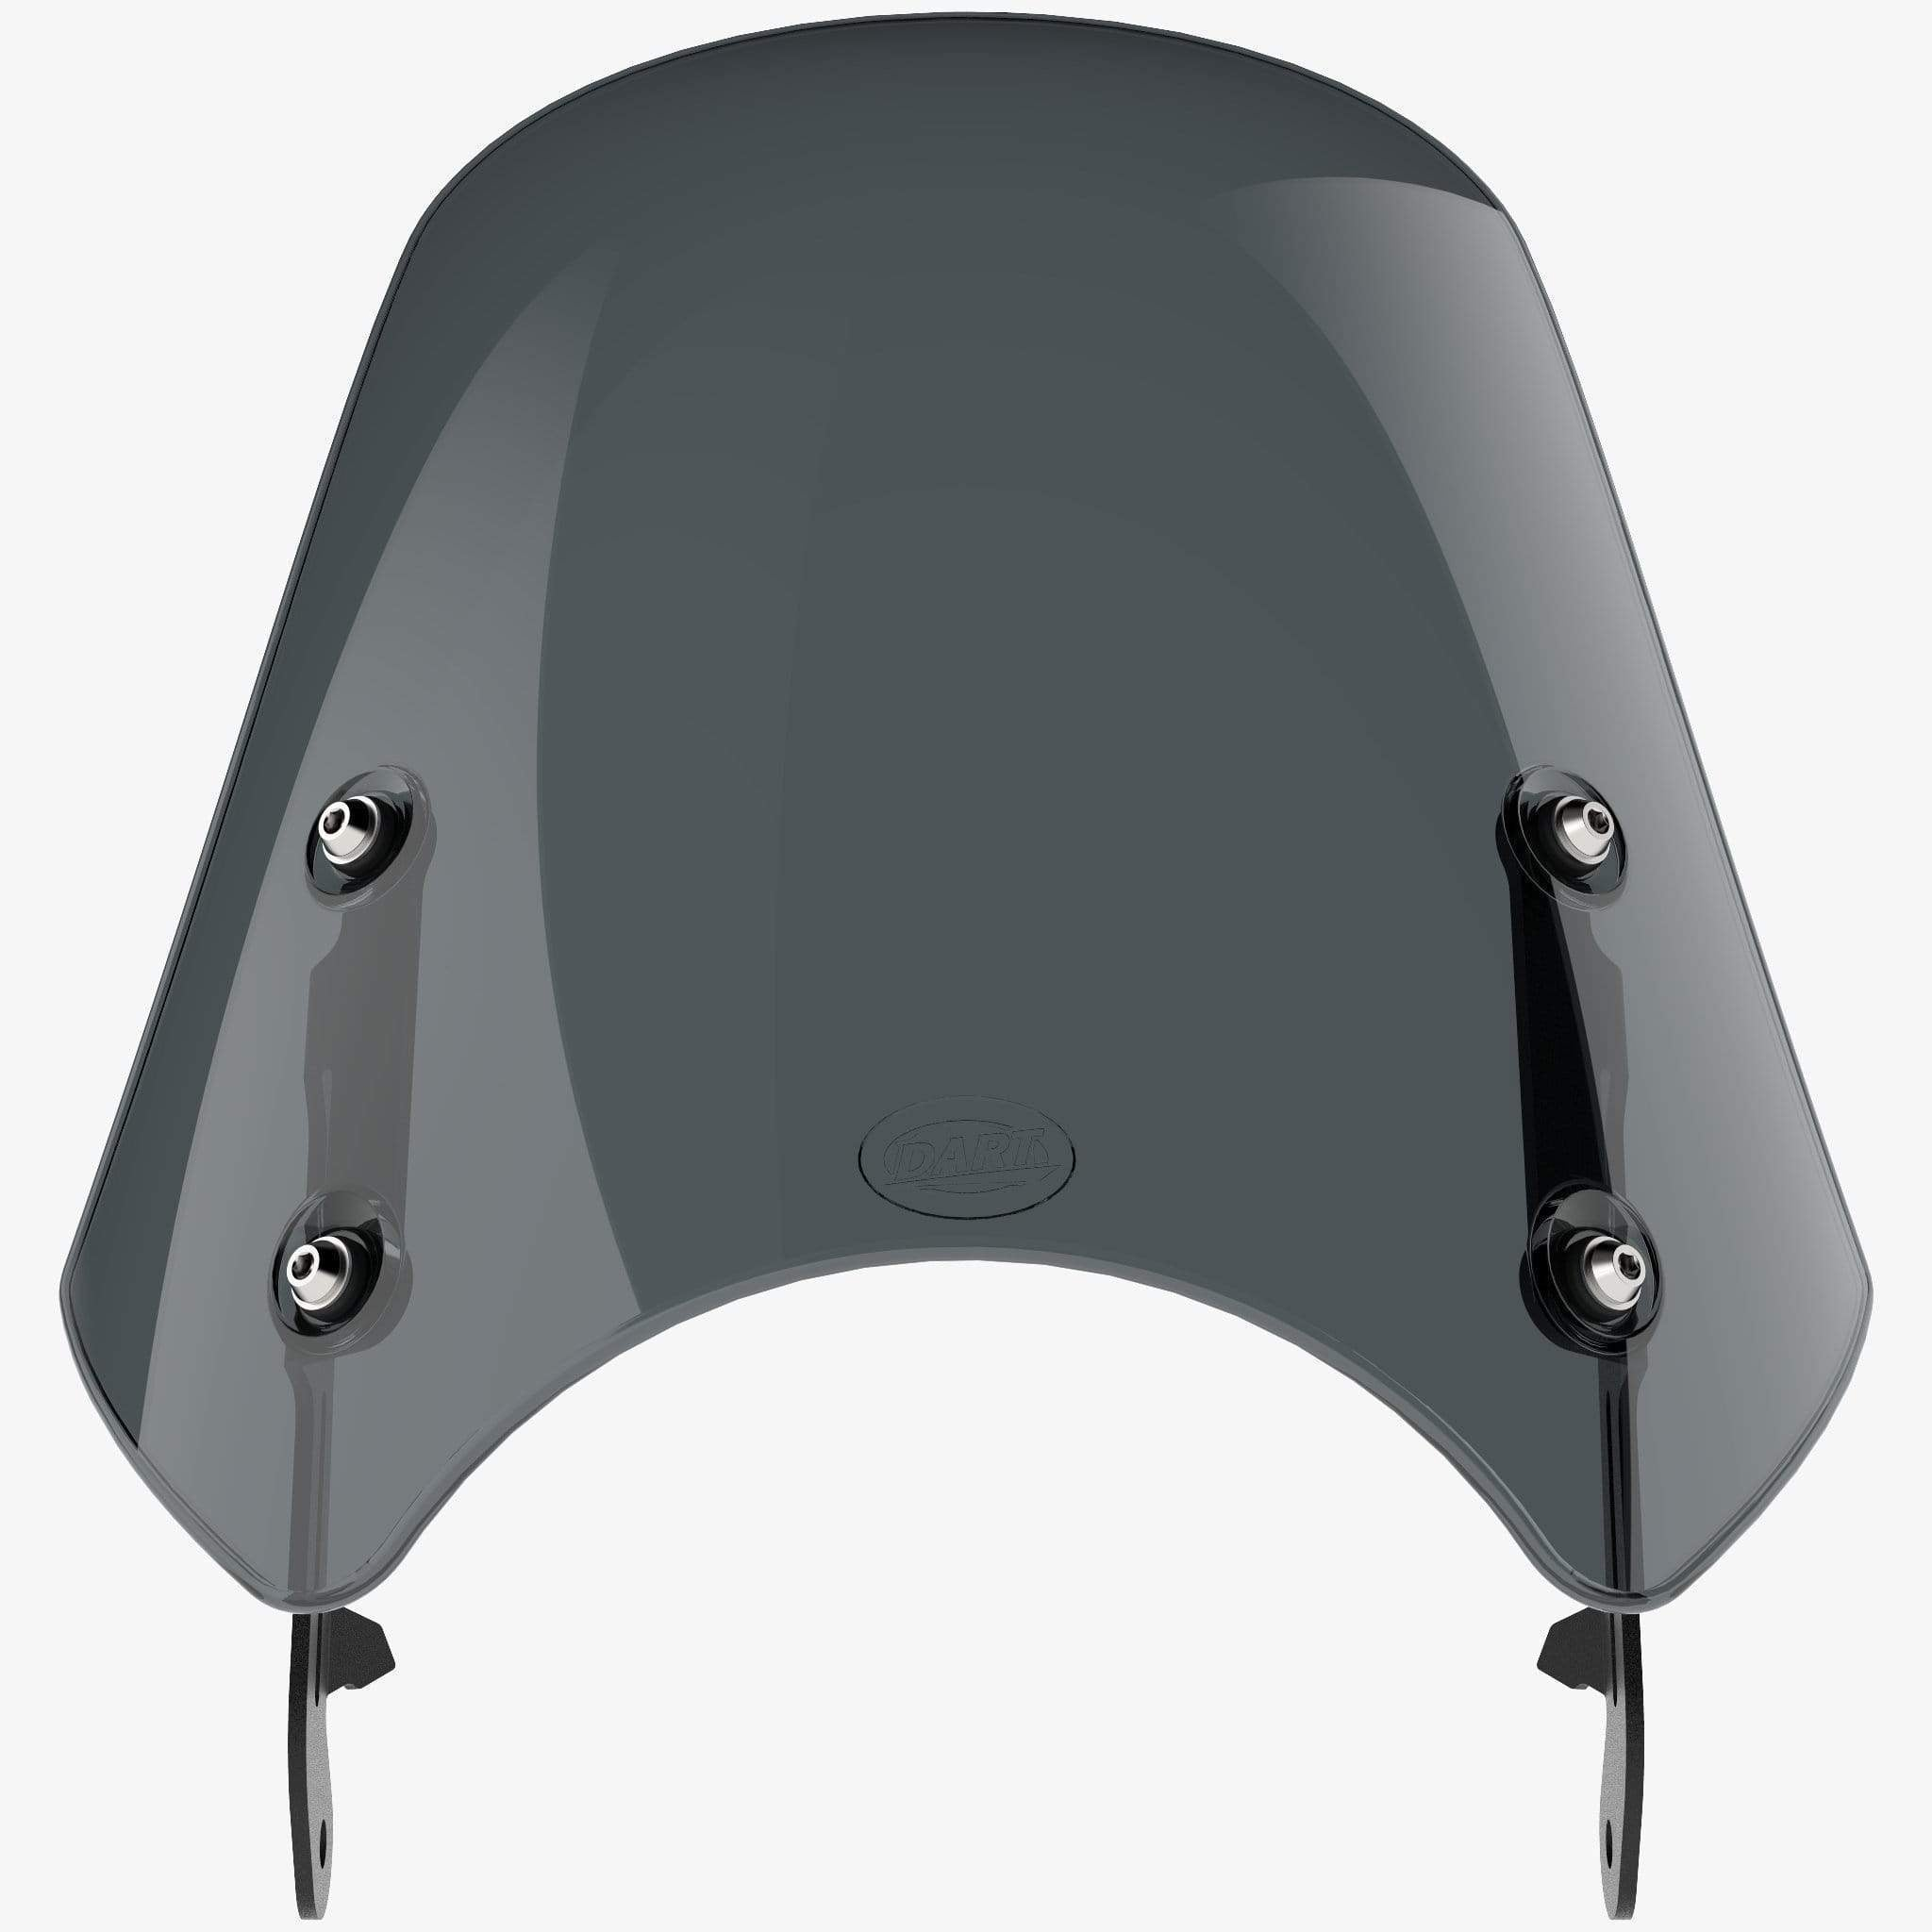 Triumph Bonneville T100 / T120 (water-cooled) - Marlin Dark Tint Marlin flyscreen Dart Flyscreen Windshield